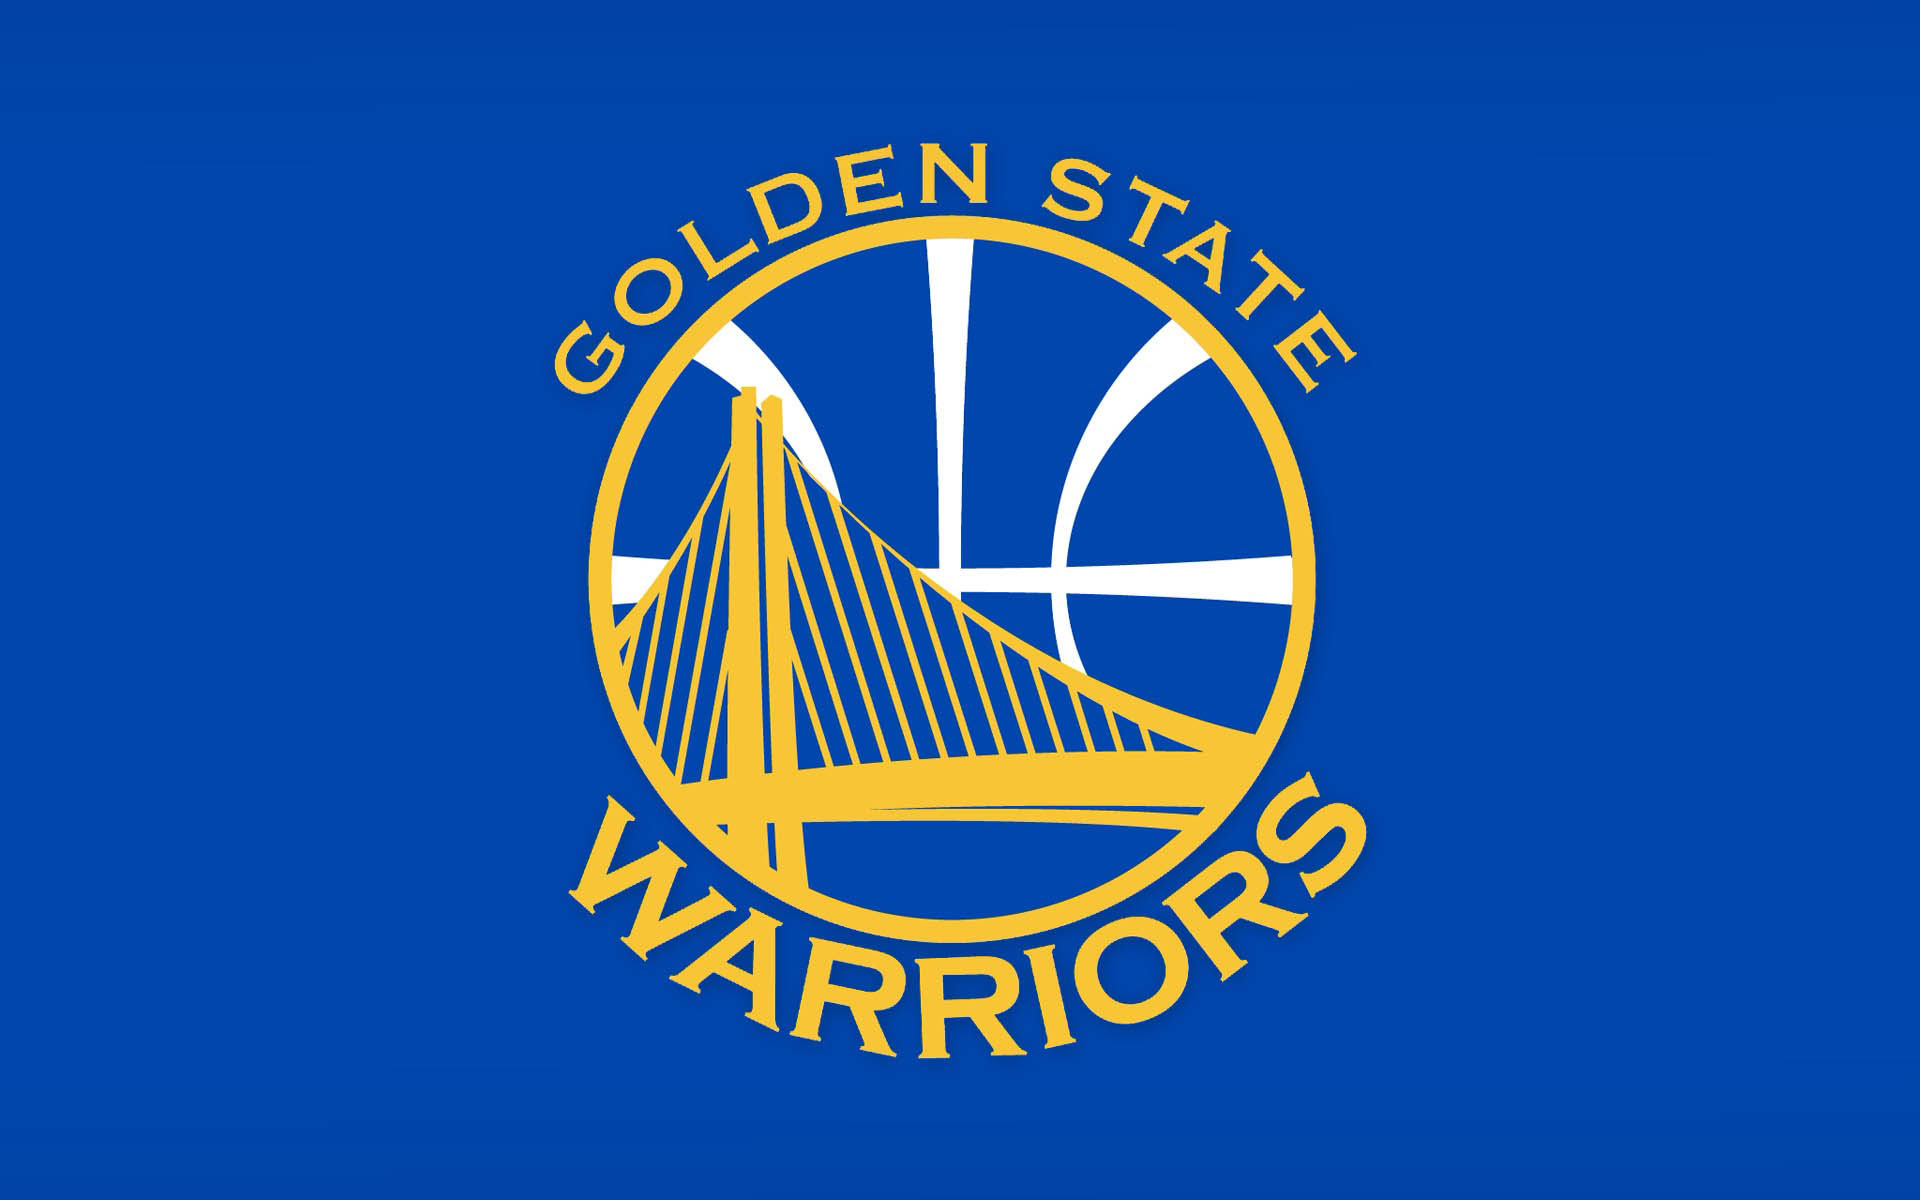 Warriors are unstoppable living out loud los angeles - Golden state warriors wallpaper 2017 ...